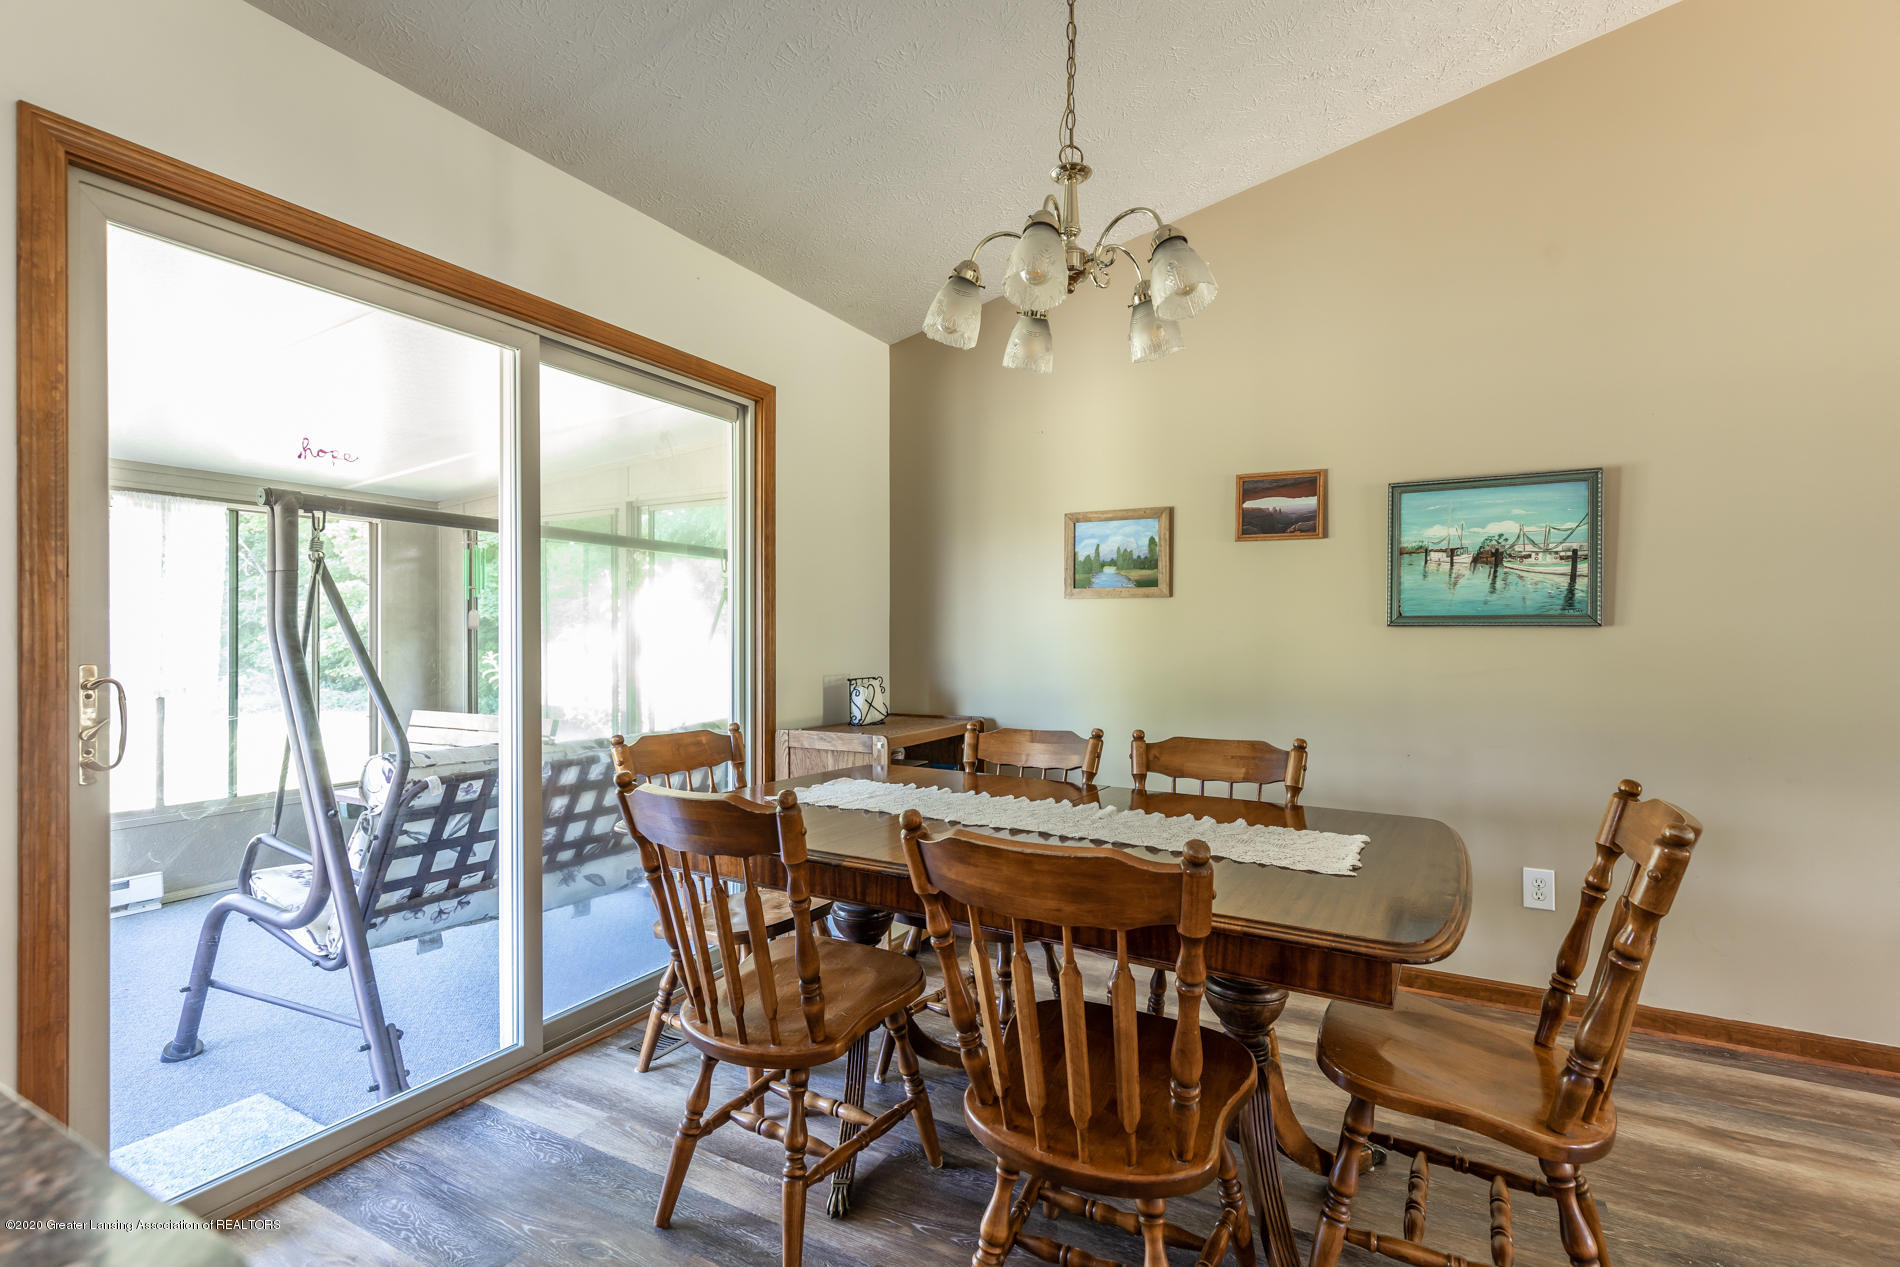 2229 S Chester Rd - Dining room - 4